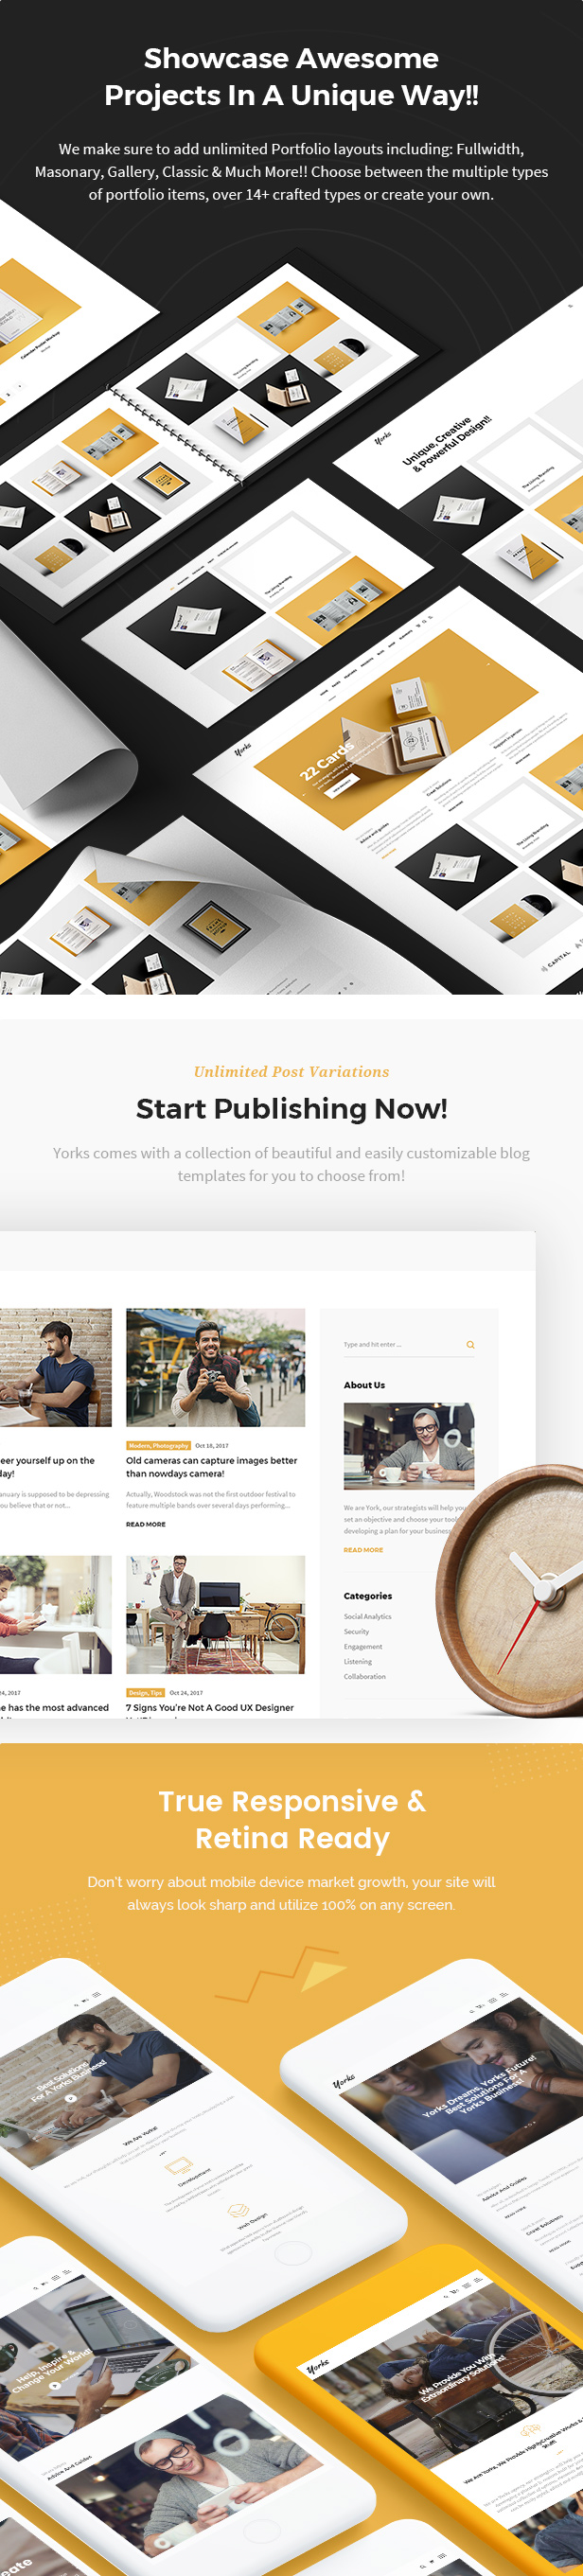 Yorks - Modern HTML5 Template For Businesses & Individuals - 7